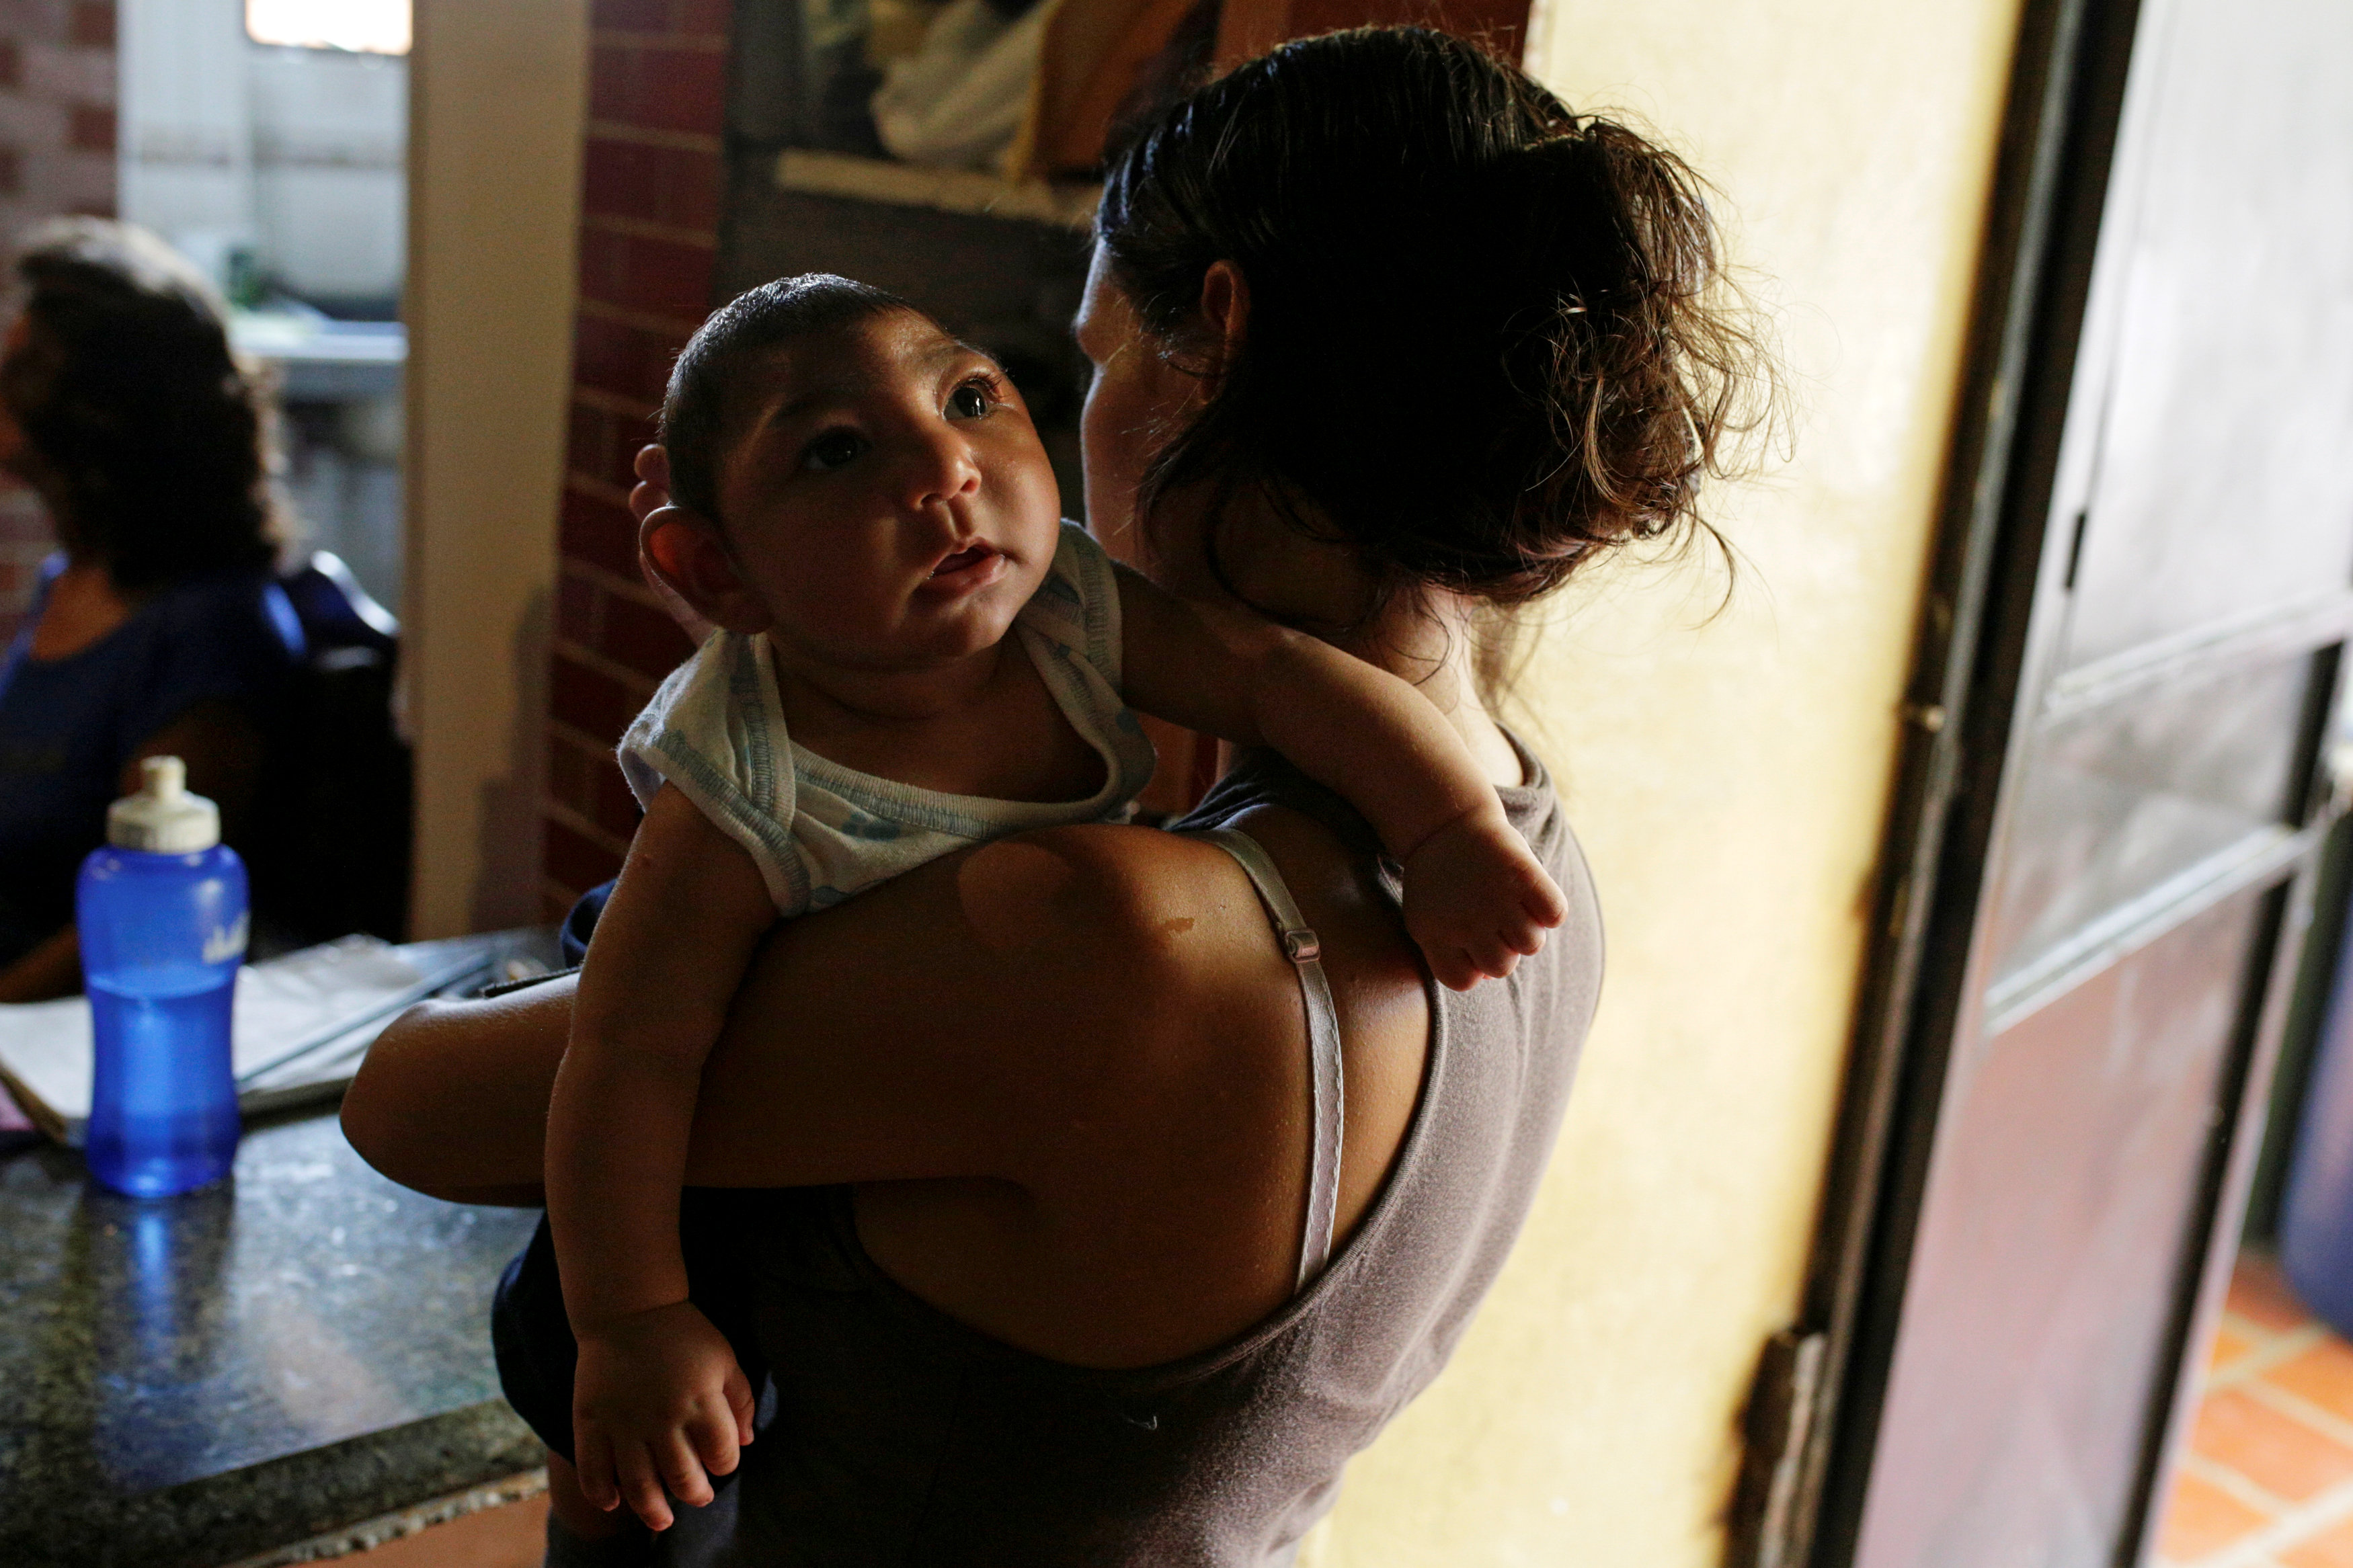 Ericka Torres holds her 3-months old son Jesus, who was born with microcephaly, at their home in Guarenas, Venezuela